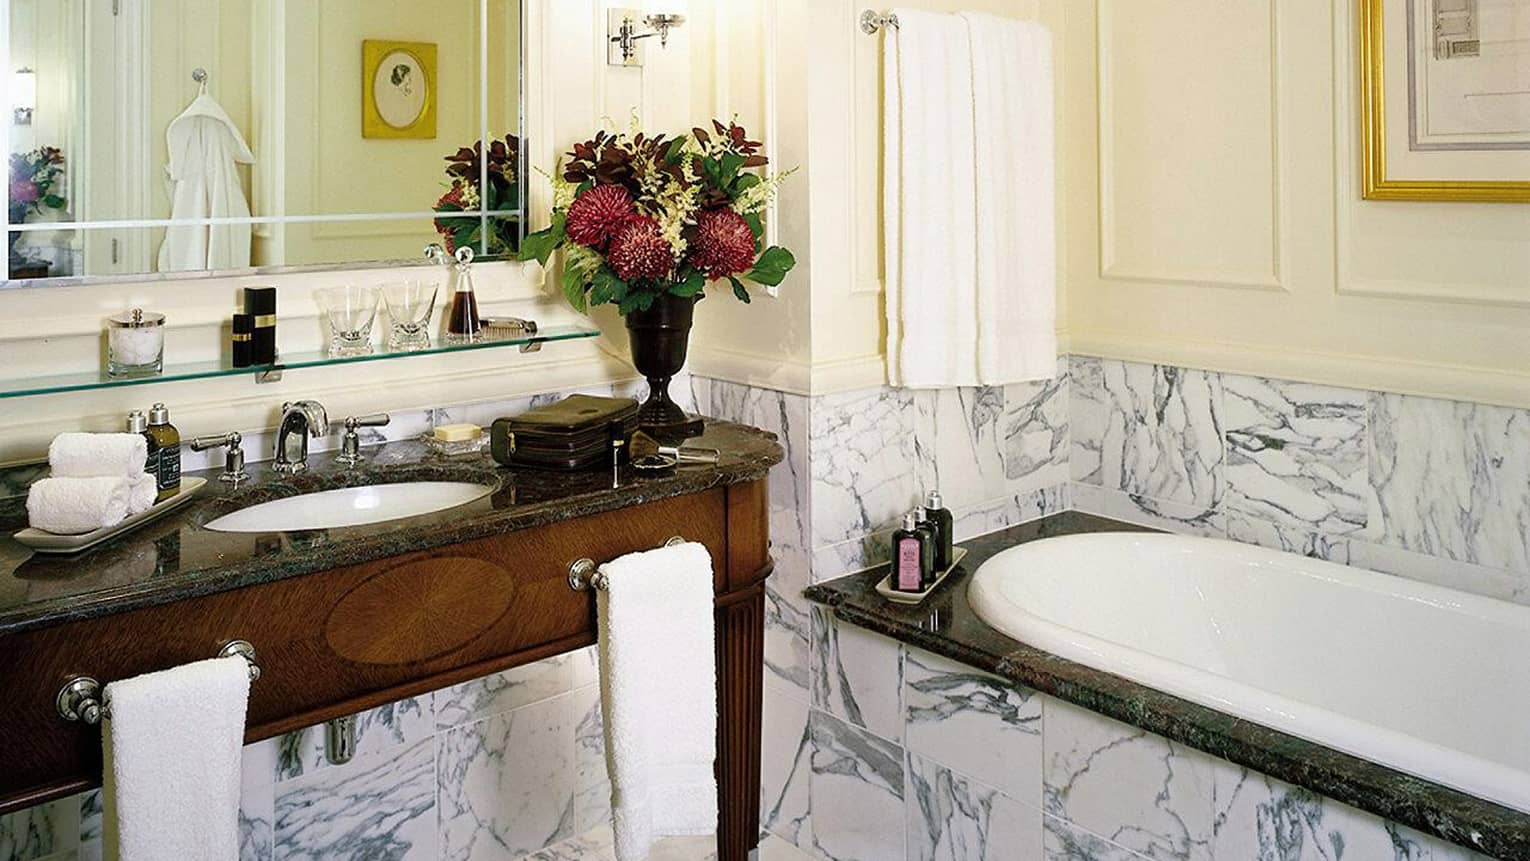 Mews Room white-and-grey marble and dark wood bathroom, sink, tub